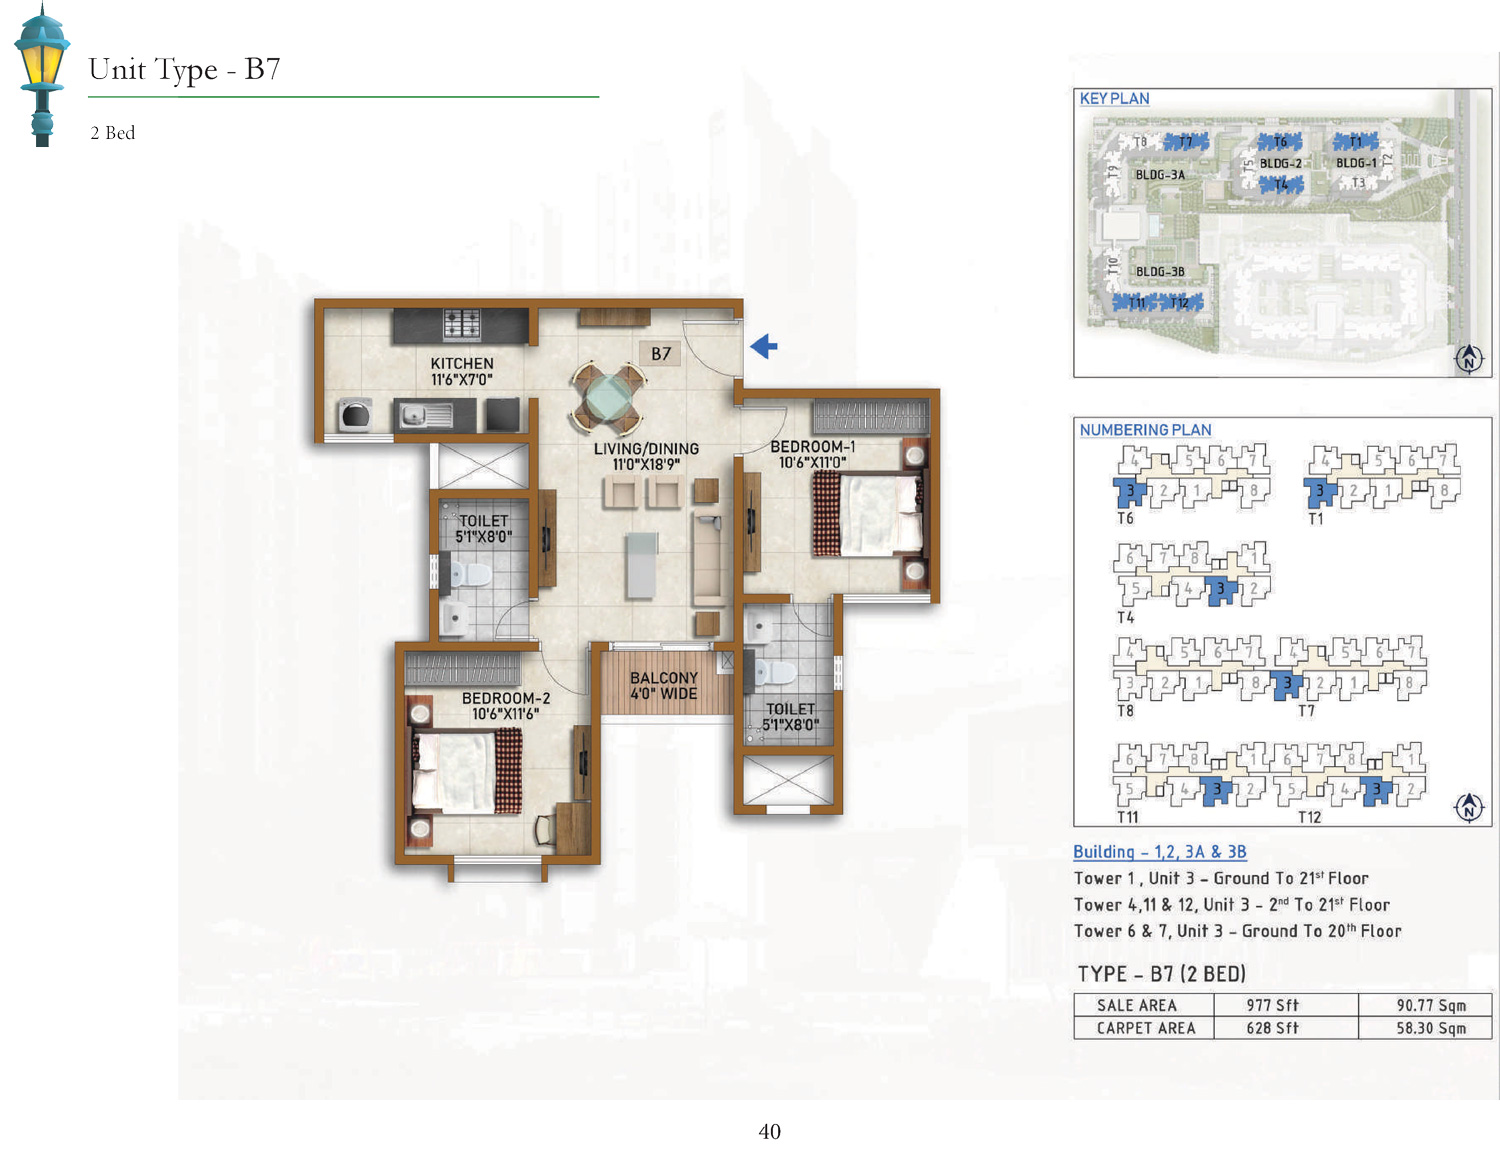 Type B7 - 977 Sq Ft